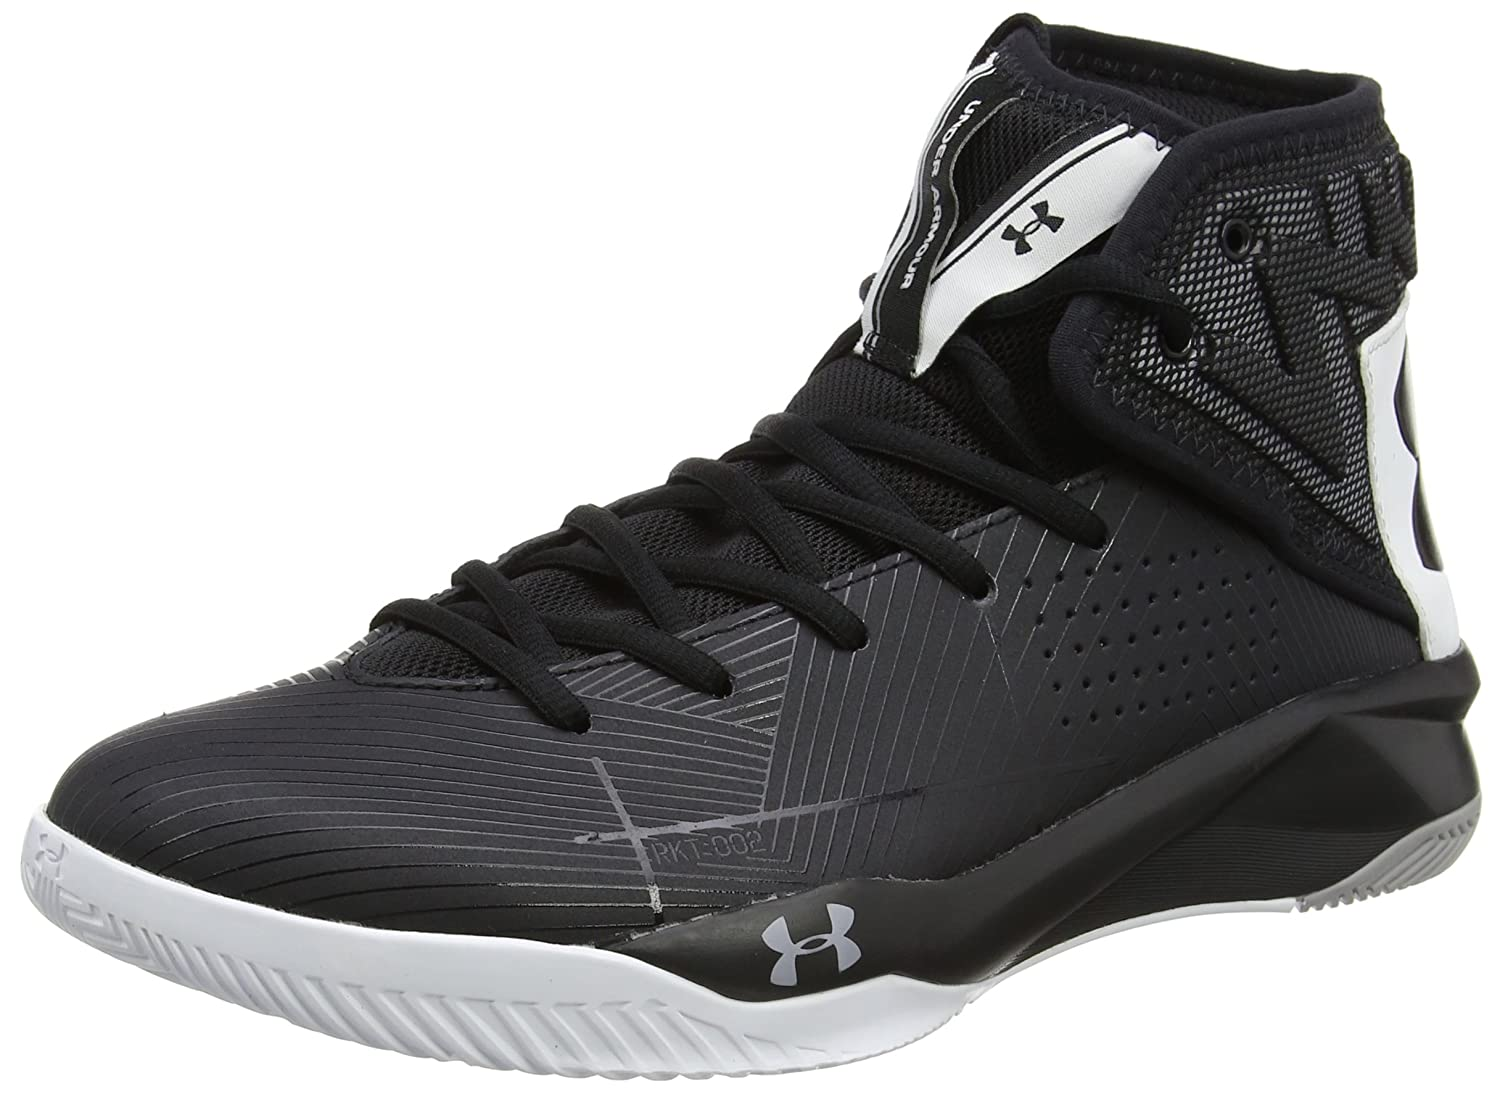 on sale 8f0c5 77068 Under Armour Men's Rocket 2 Cross-Trainer Shoe